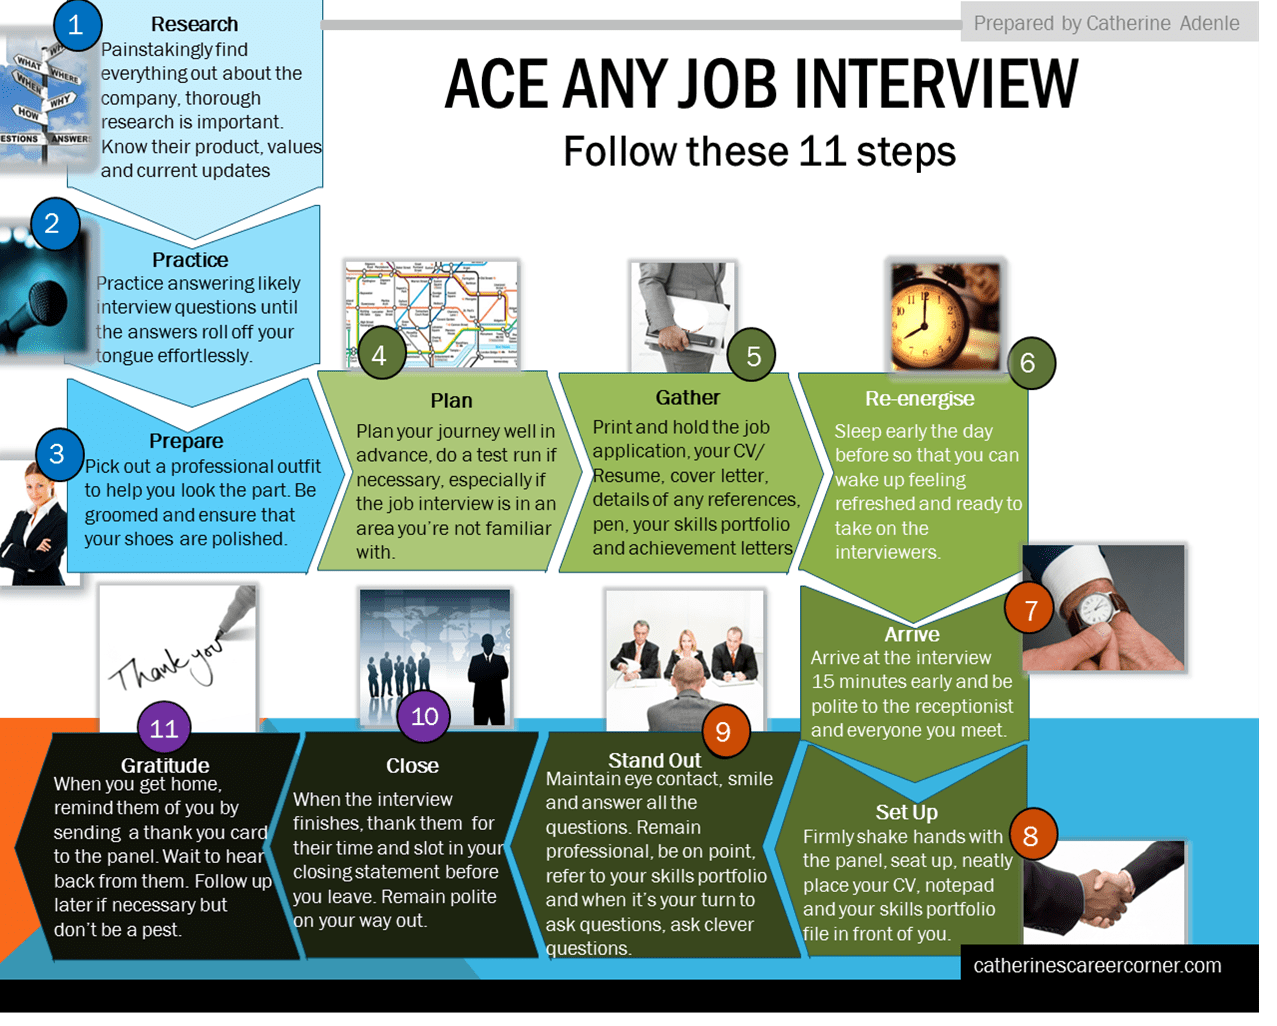 video ways to ace any job interview catherine s career now that you have watched the video 11 ways to ace any job interview and our post do you have any further job interview tips for our readers